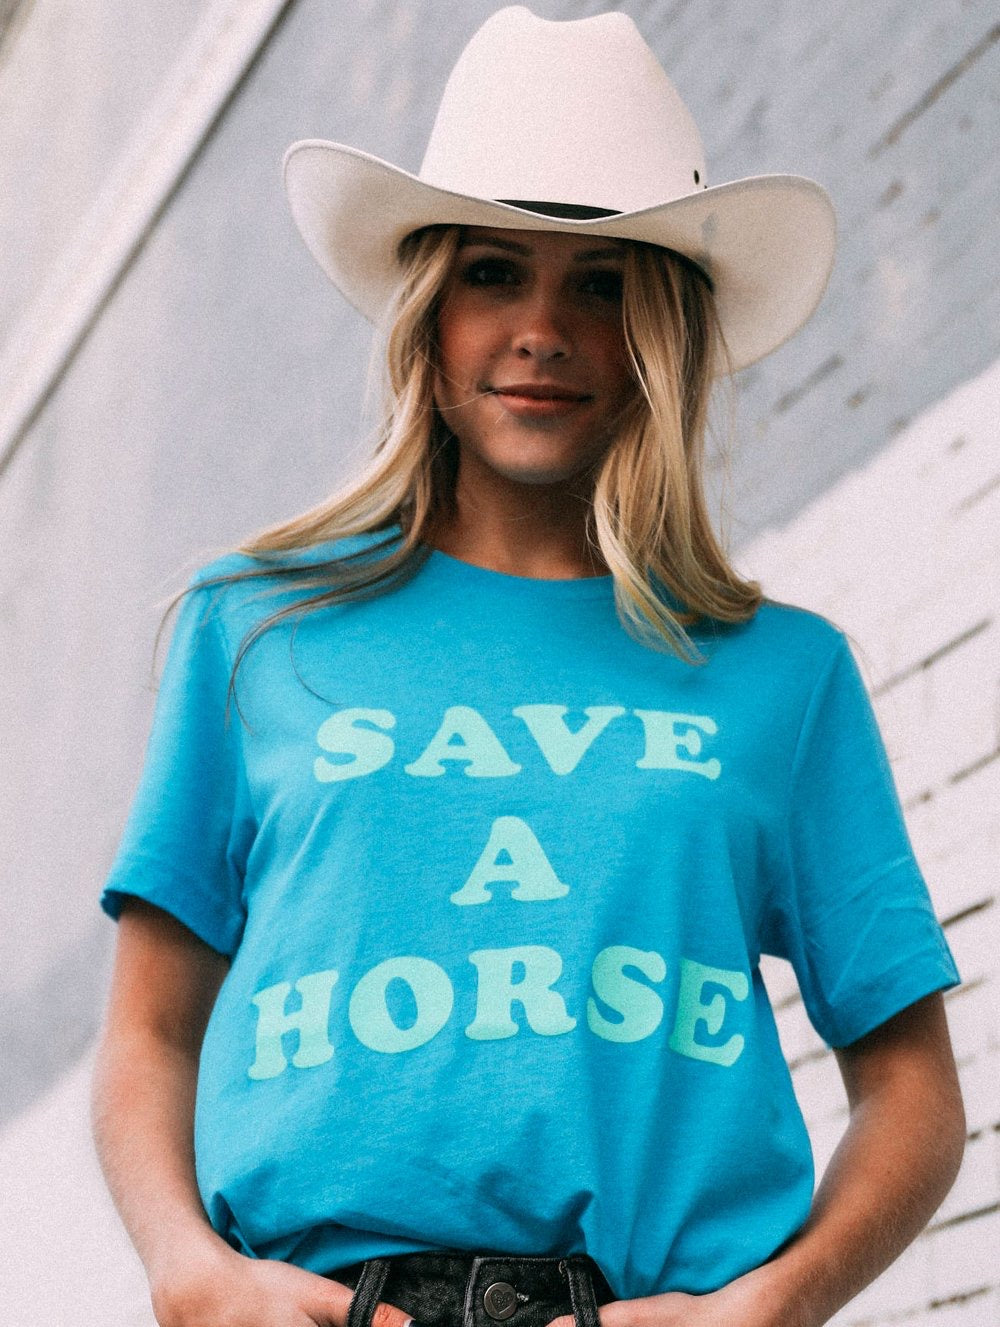 Save a Horse by Charlie Southern